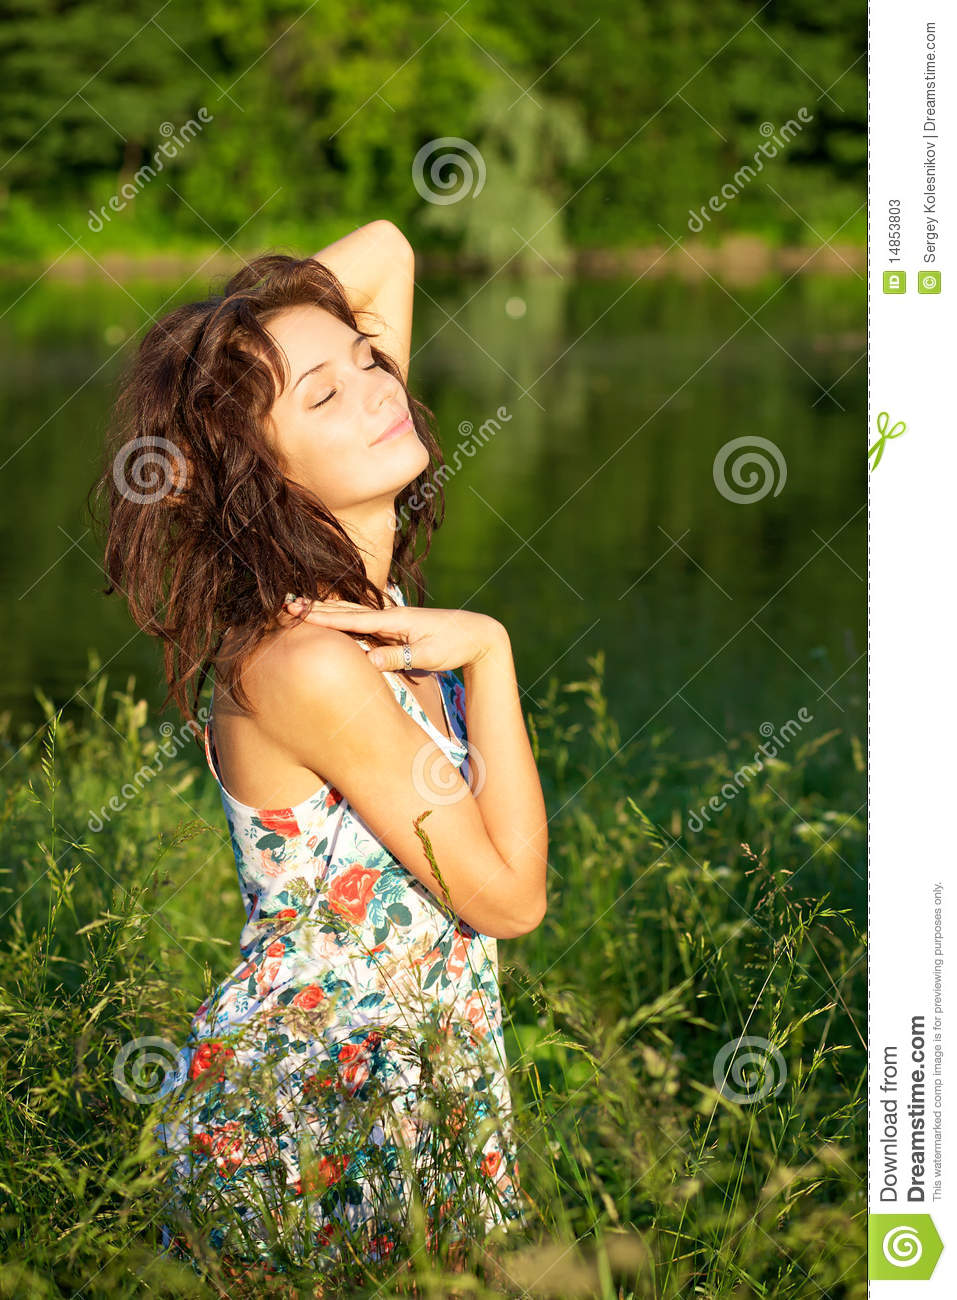 woman posing outdoors